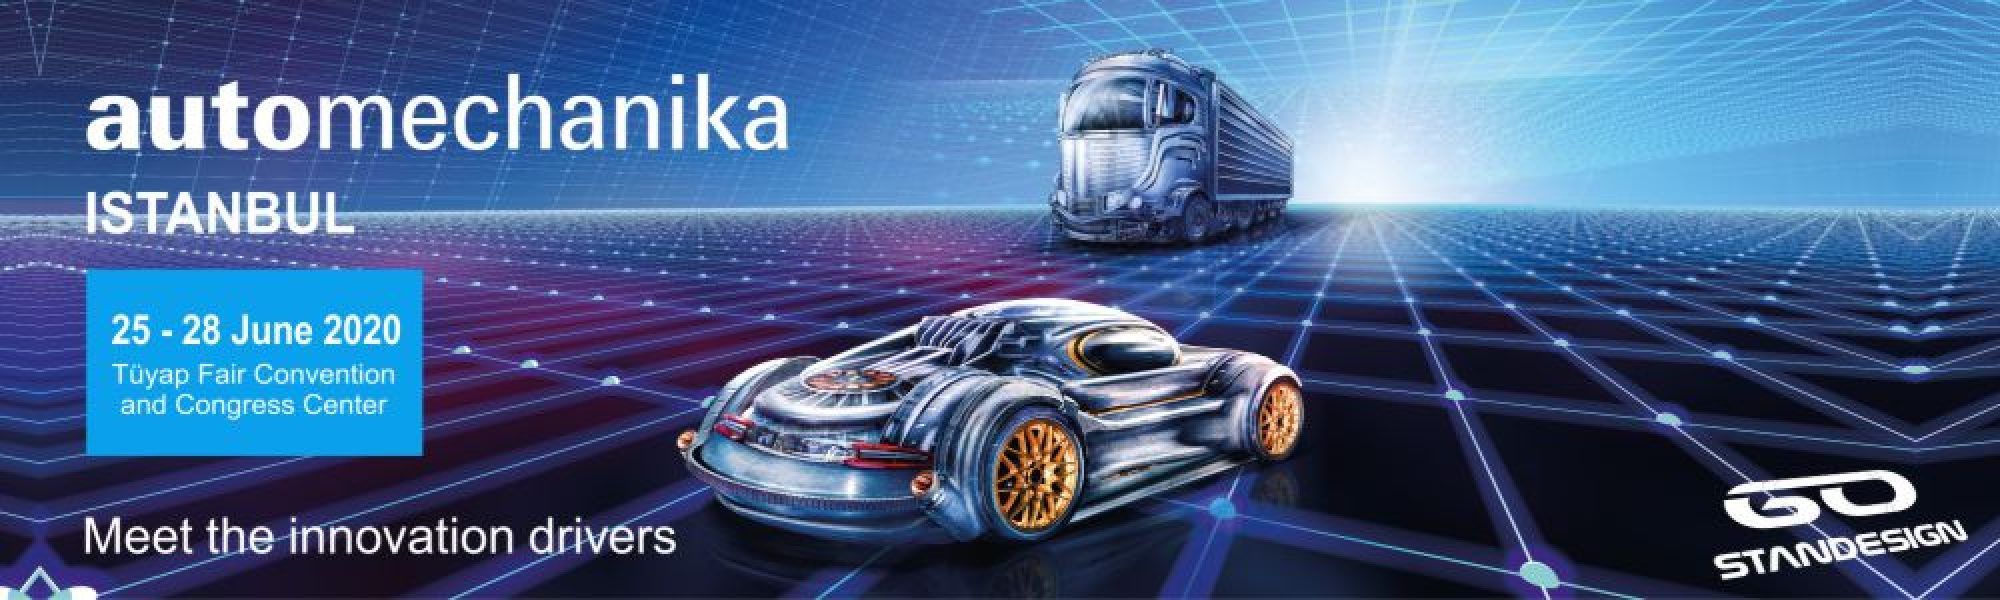 Automechanika Istanbul 2020 Exhibition Hero